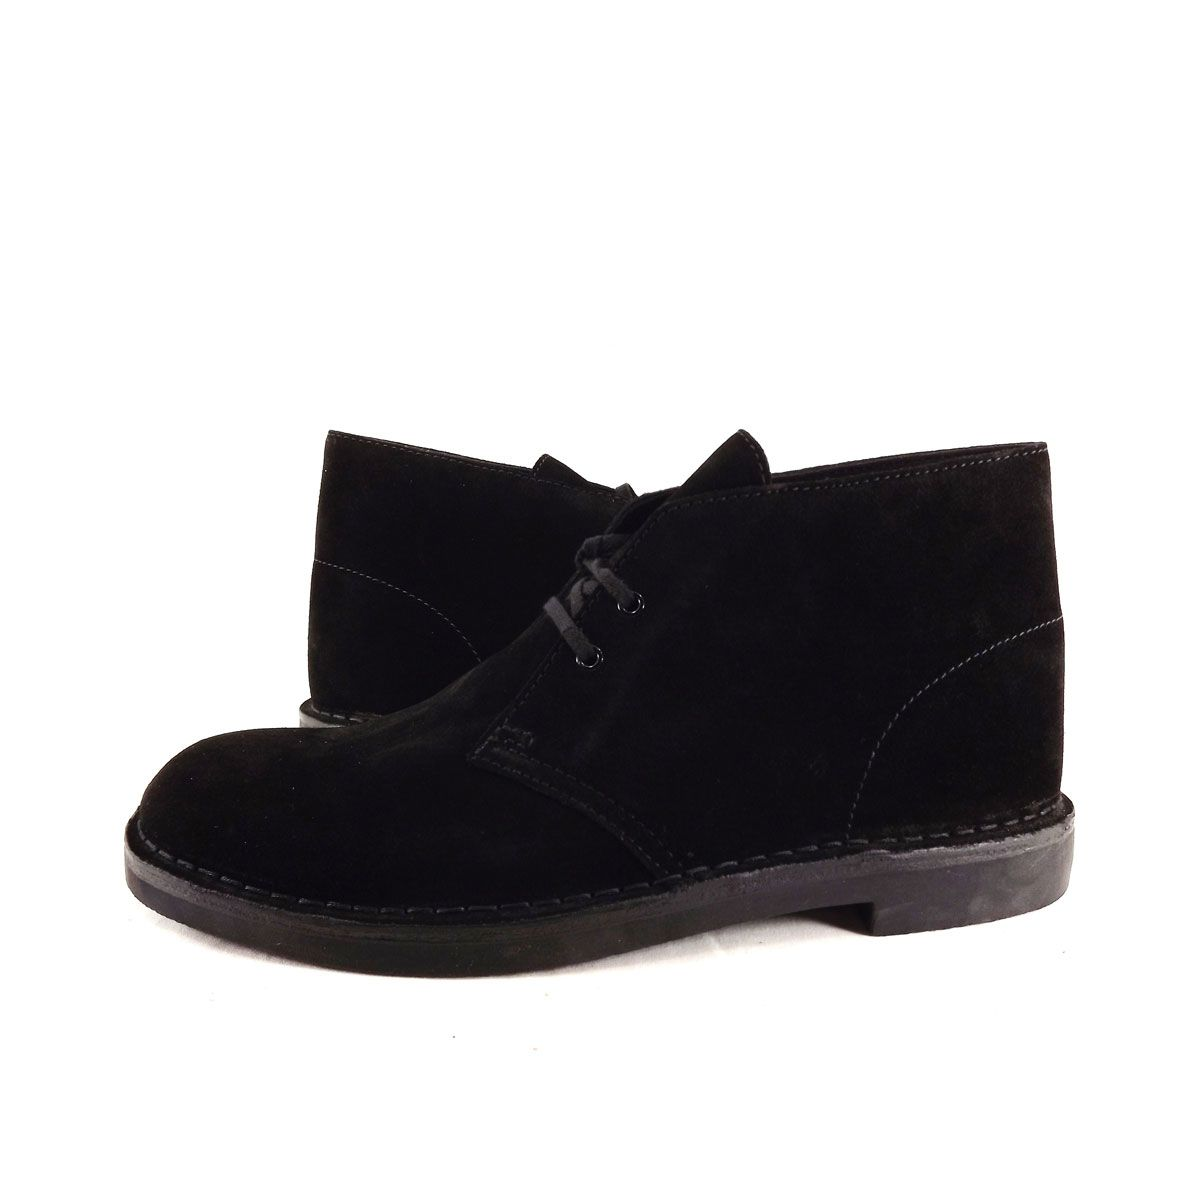 9fc330f31aa Clarks Bushacre 2 | Clarks Bushacre 2 | Clarks bushacre, Clarks, Boots